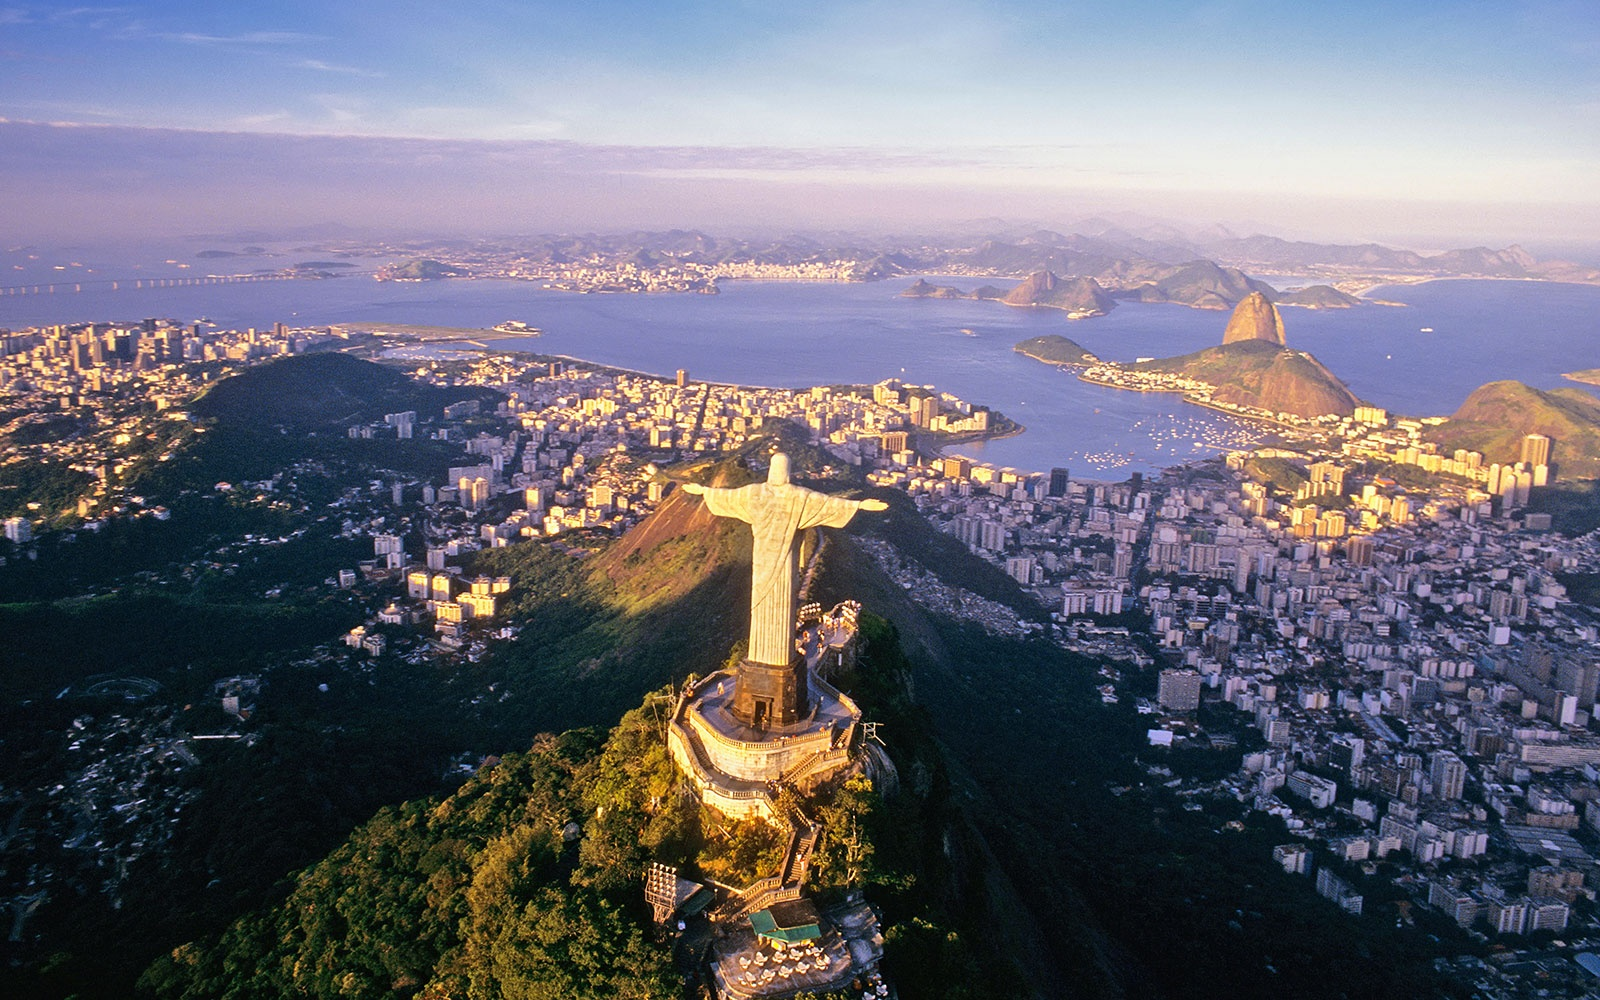 Christ the Redeemer Statue, Rio